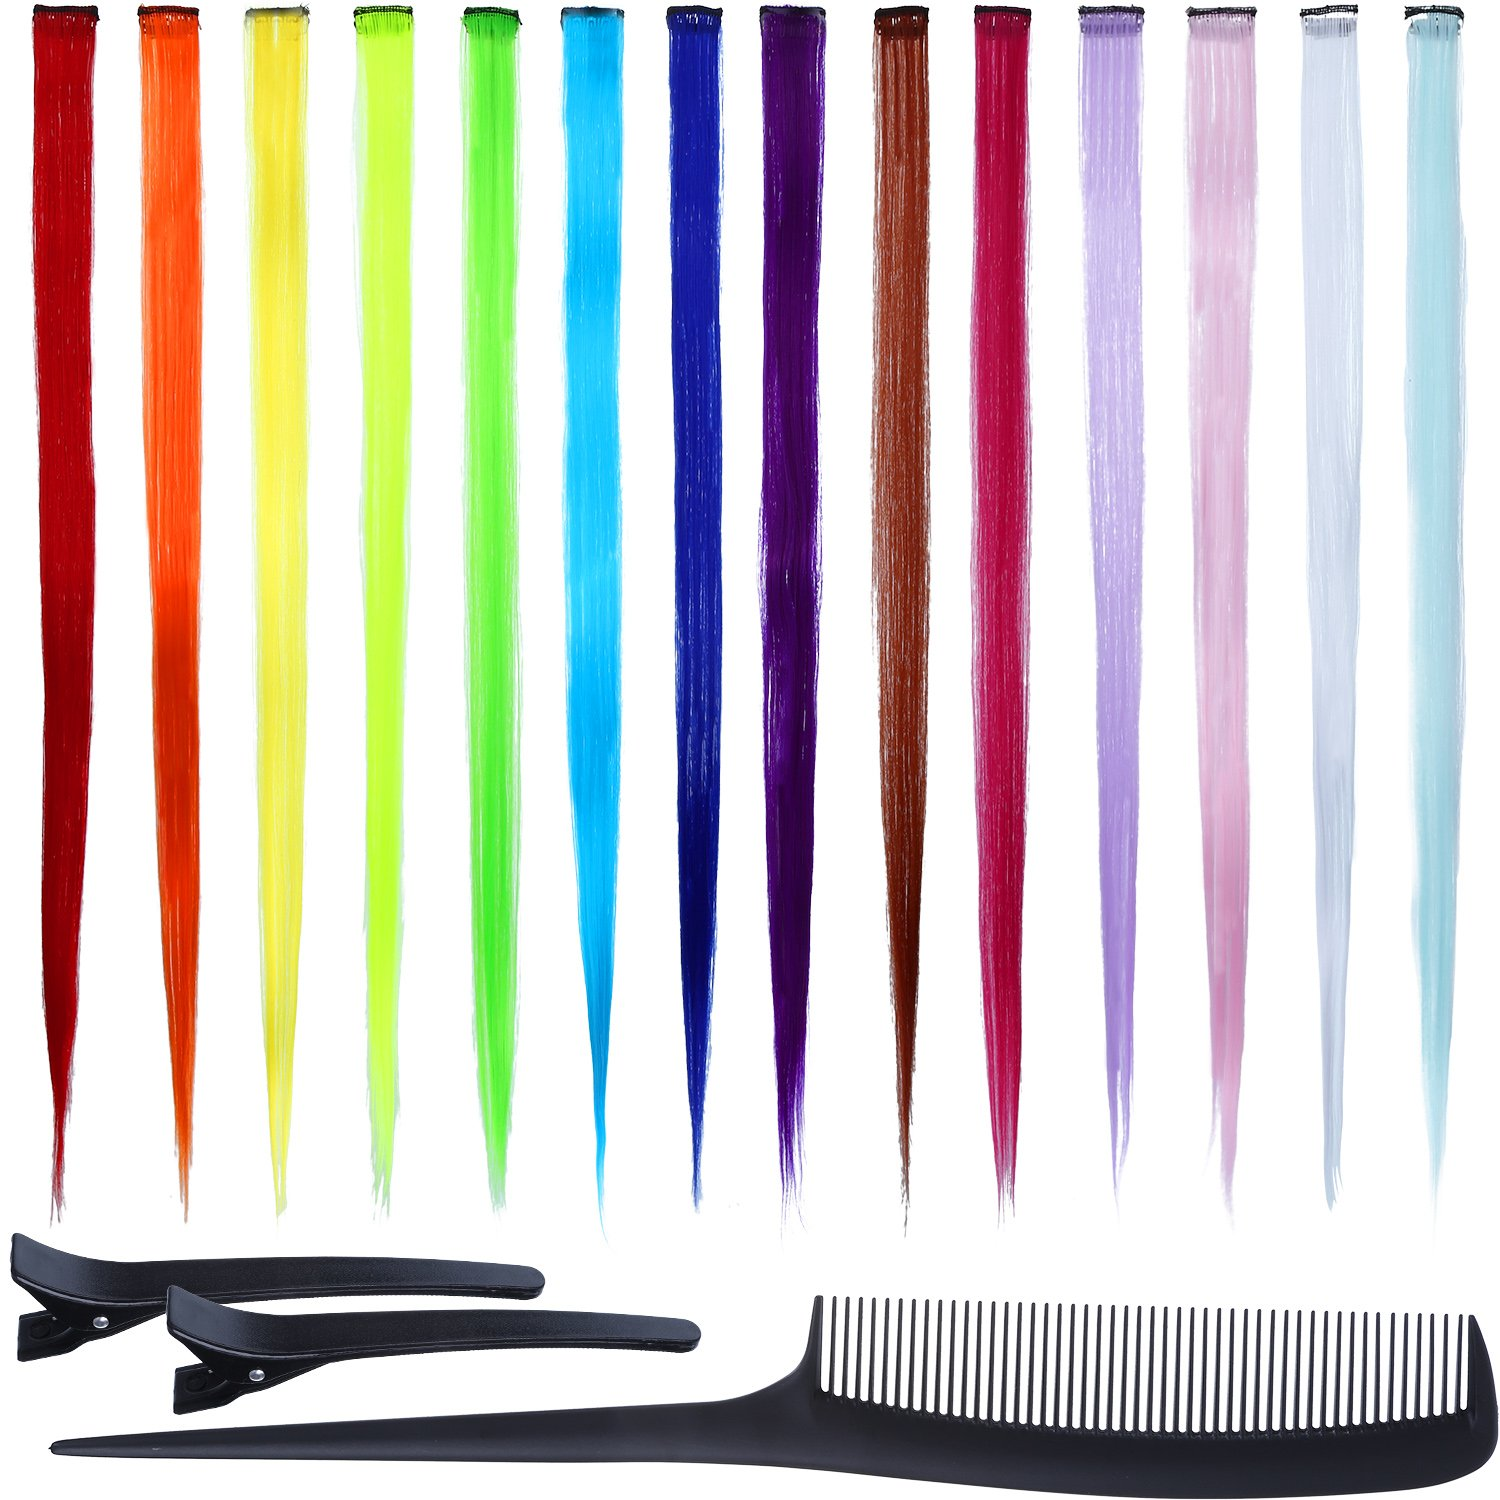 14 Pieces Multi Colors Hair Extensions Party Highlights Clip 23 Inches Straight Synthetic Hairpieces with Black Clip and Comb for Kids Girls Boao